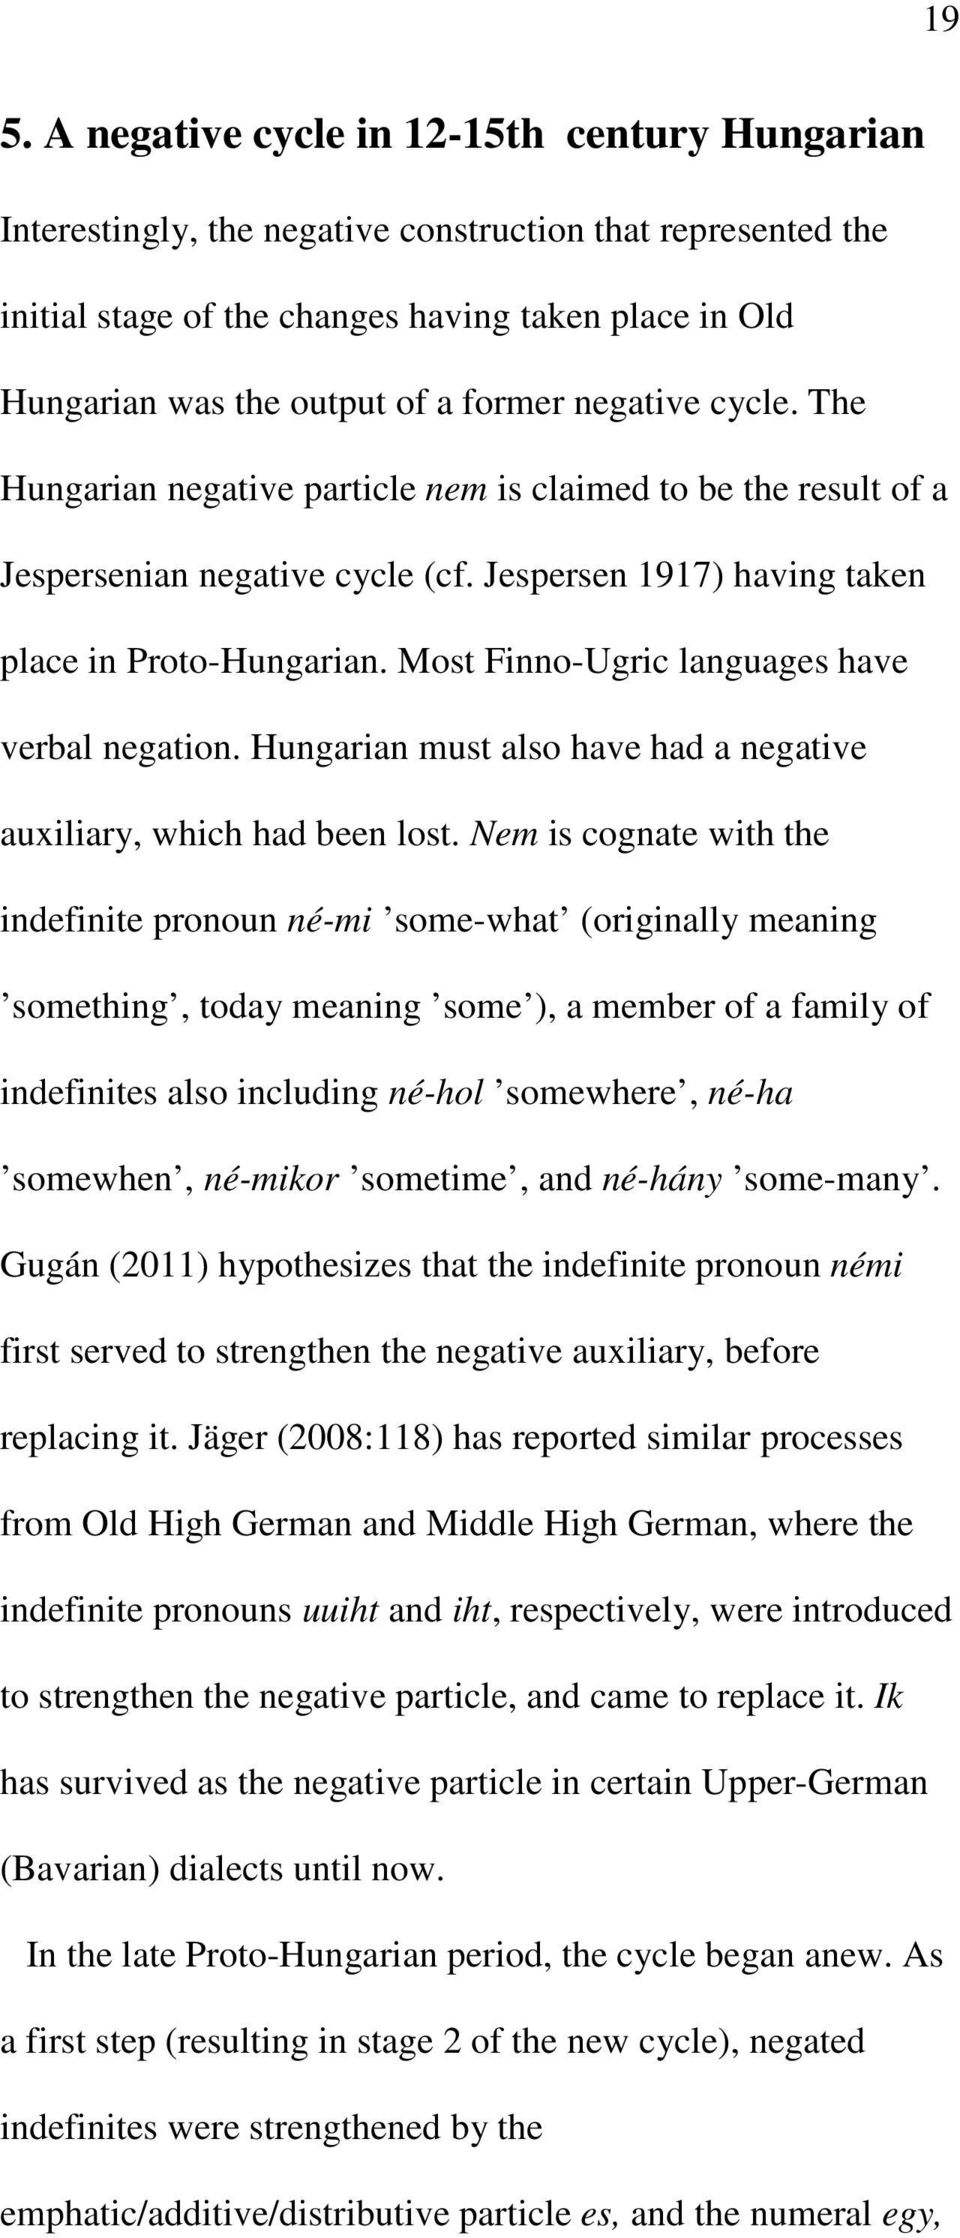 Most Finno-Ugric languages have verbal negation. Hungarian must also have had a negative auxiliary, which had been lost.